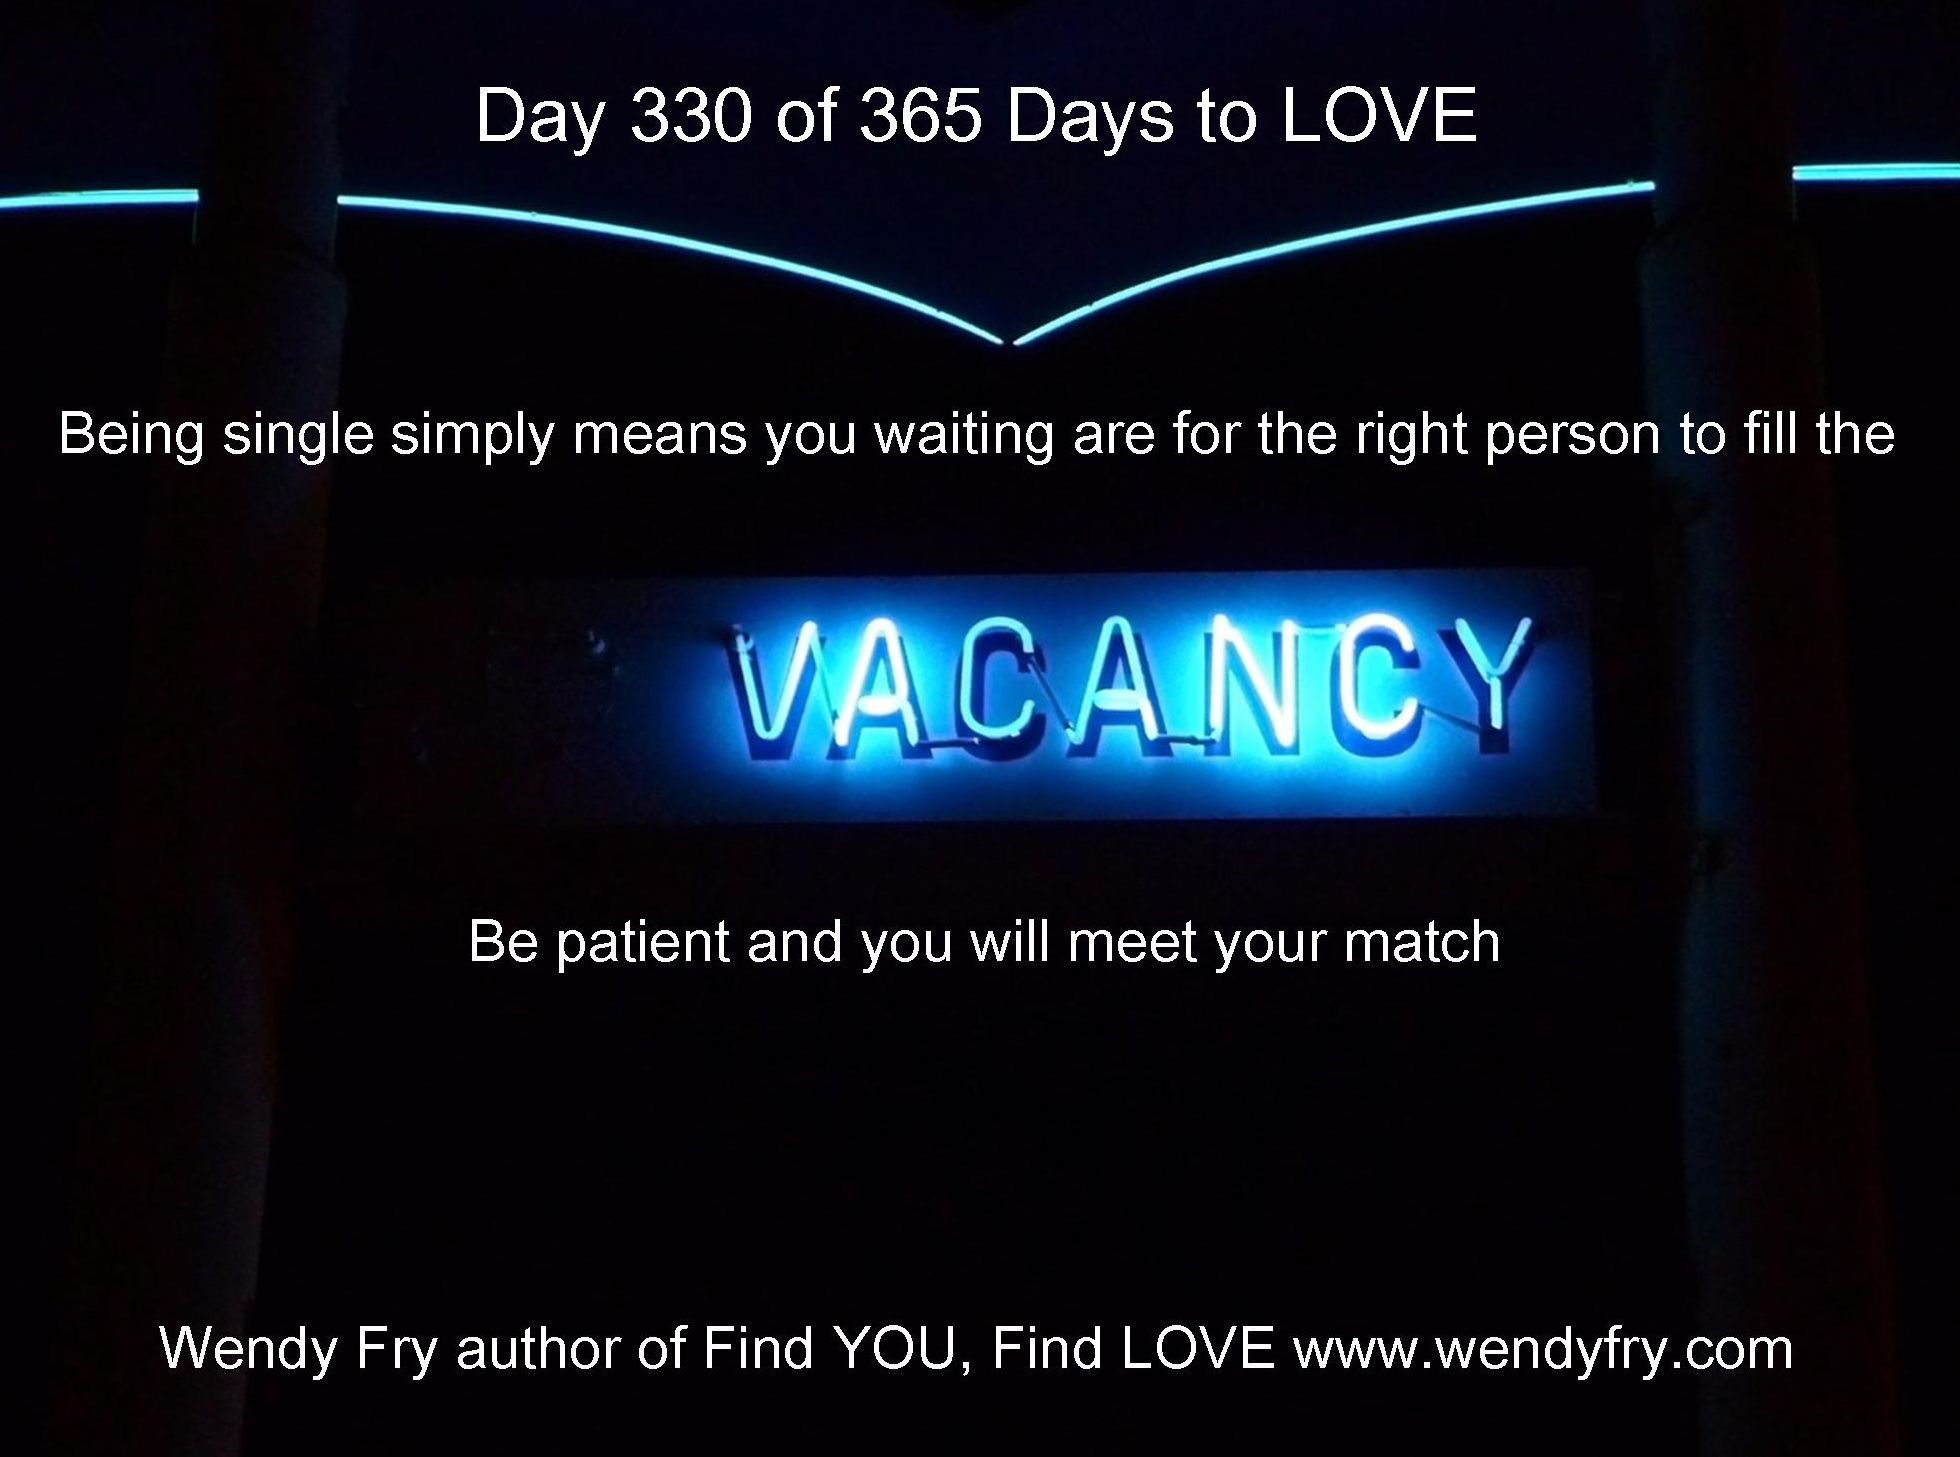 Day 330 of 365 Days to LOVE  Being single simply means you